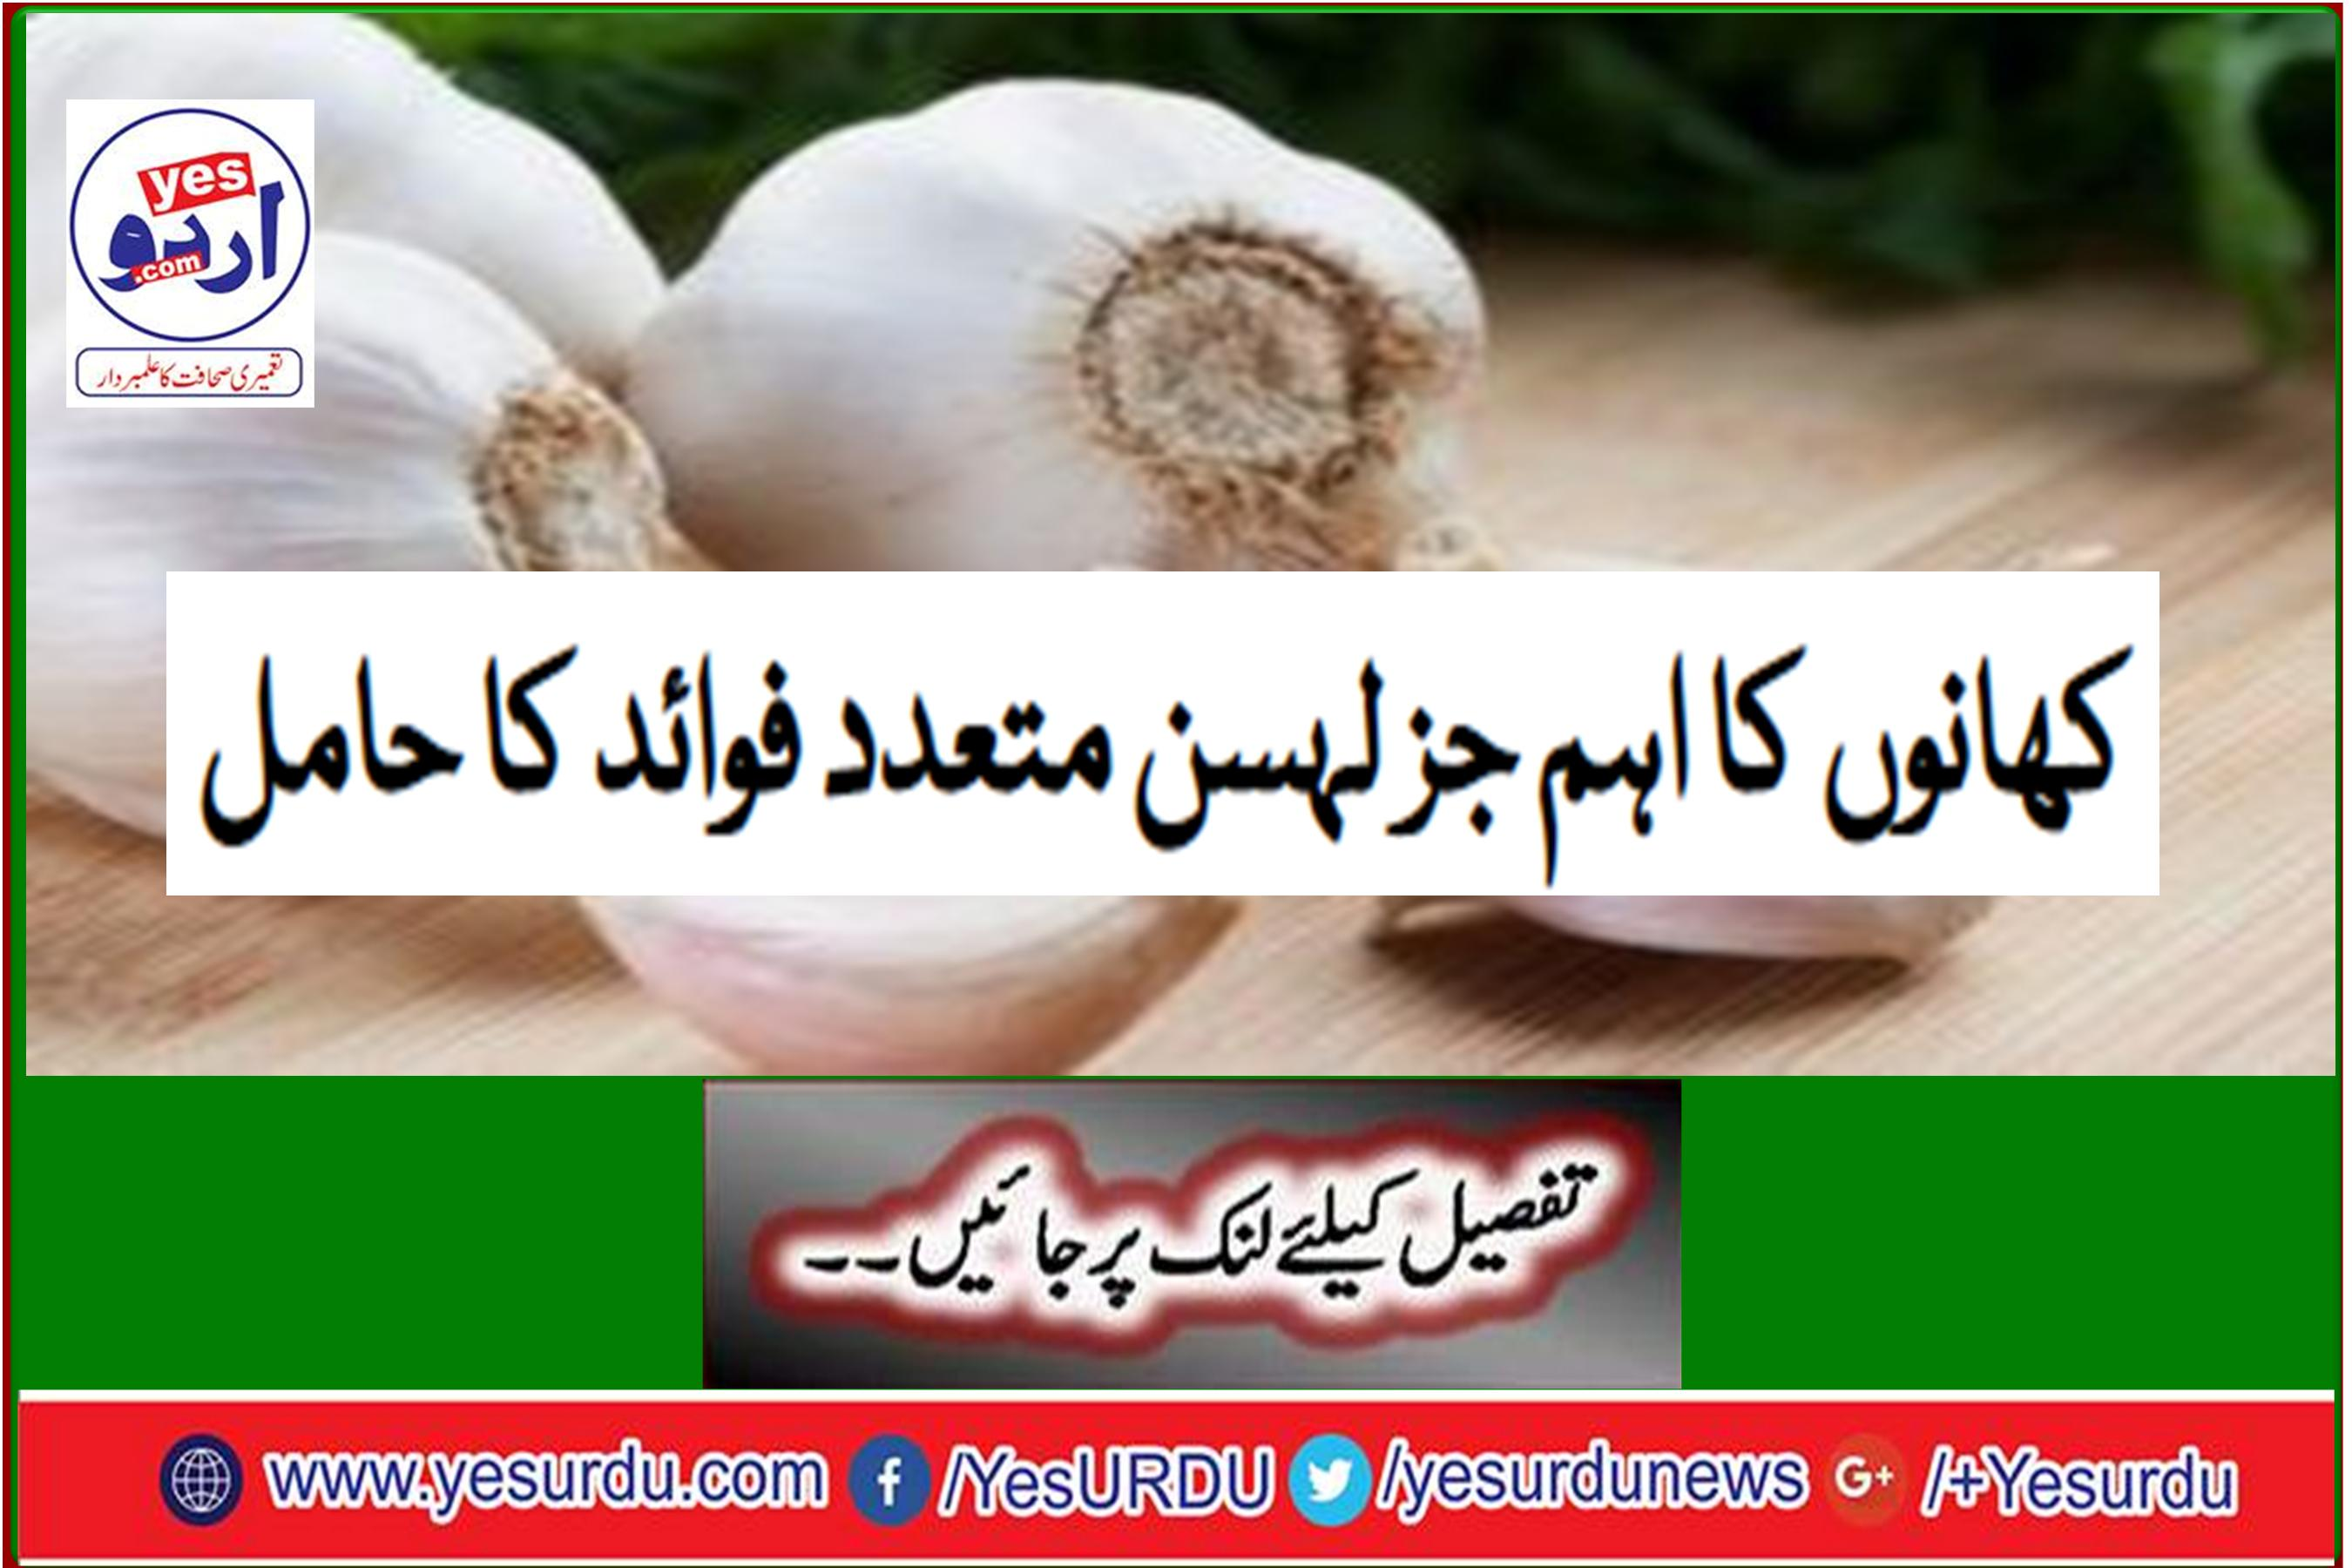 Garlic, an important component of foods, has many benefits